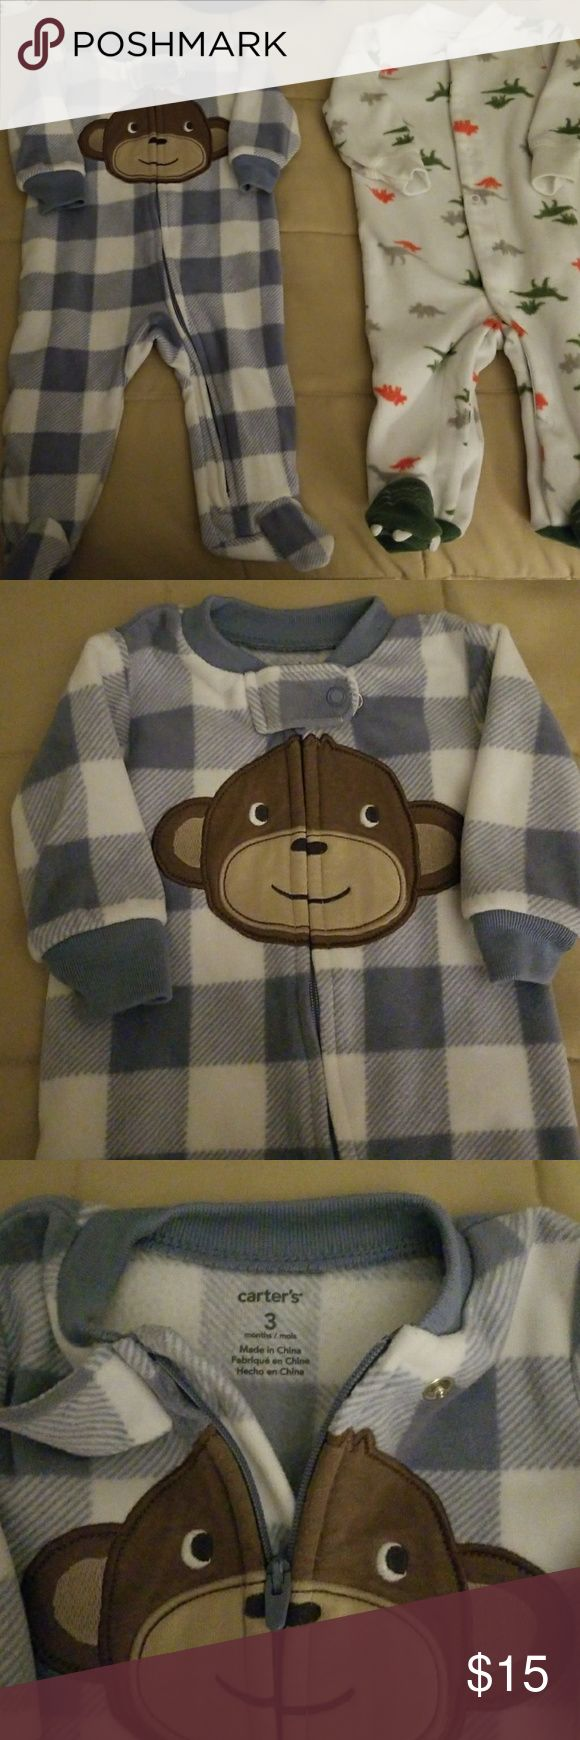 I just added this listing on Poshmark: Carter's footed fleece pajamas. #shopmycloset #poshmark #fashion #shopping #style #forsale #Carter's #Other